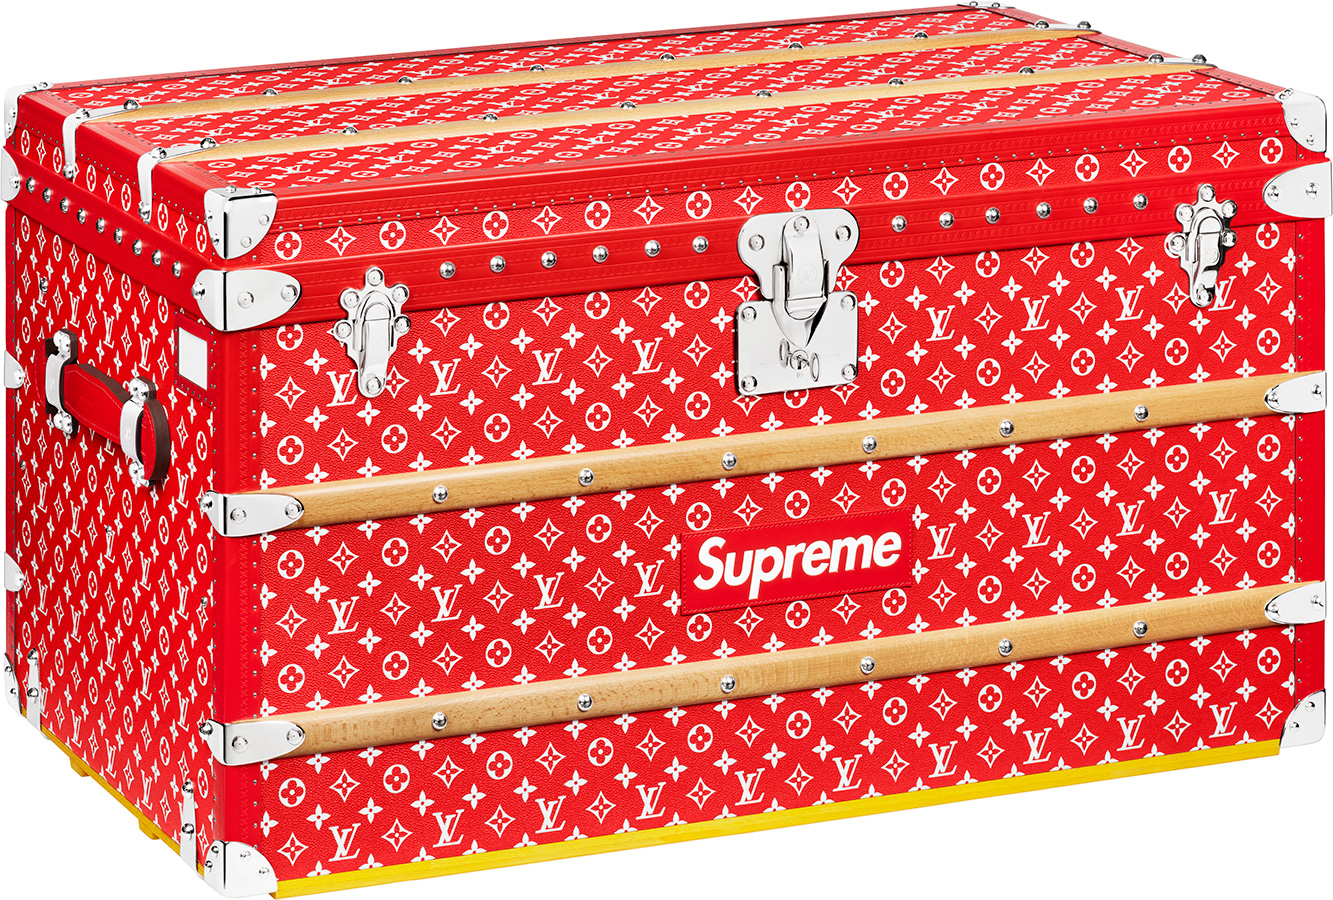 Fall And Winter Wallpaper Supreme Louis Vuitton Supreme Malle Courrier 90 Trunk